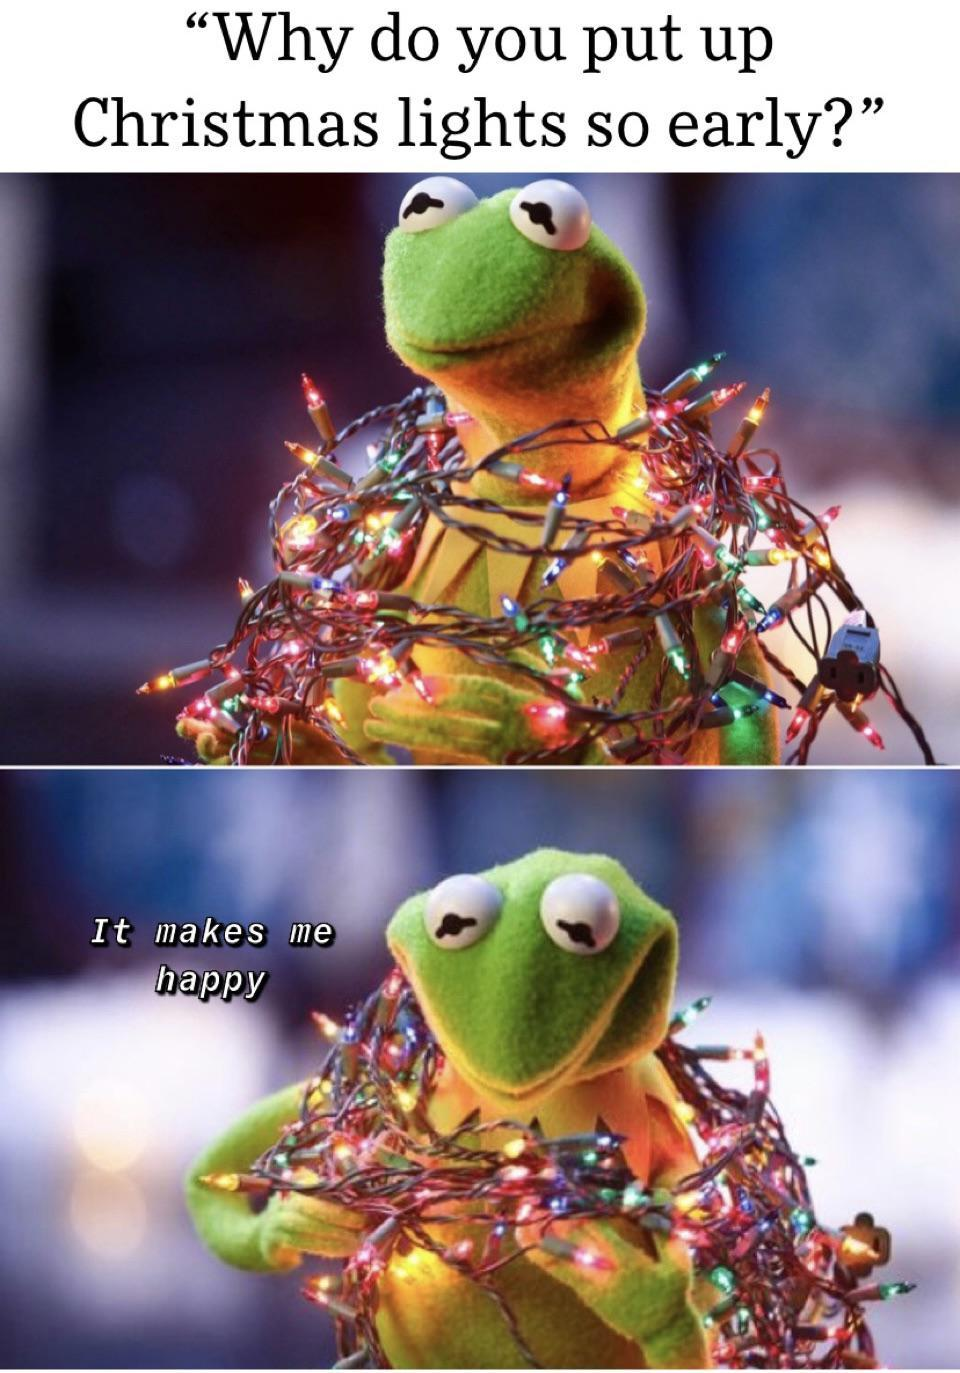 Even though I don't spend Christmas with my family, I always set up lights for myself. It brings me joy every year. #memes zem#meme#memes#funny#dankmemes#memesdaily#funnymemes#lol#follow#humor#dank#like#lo